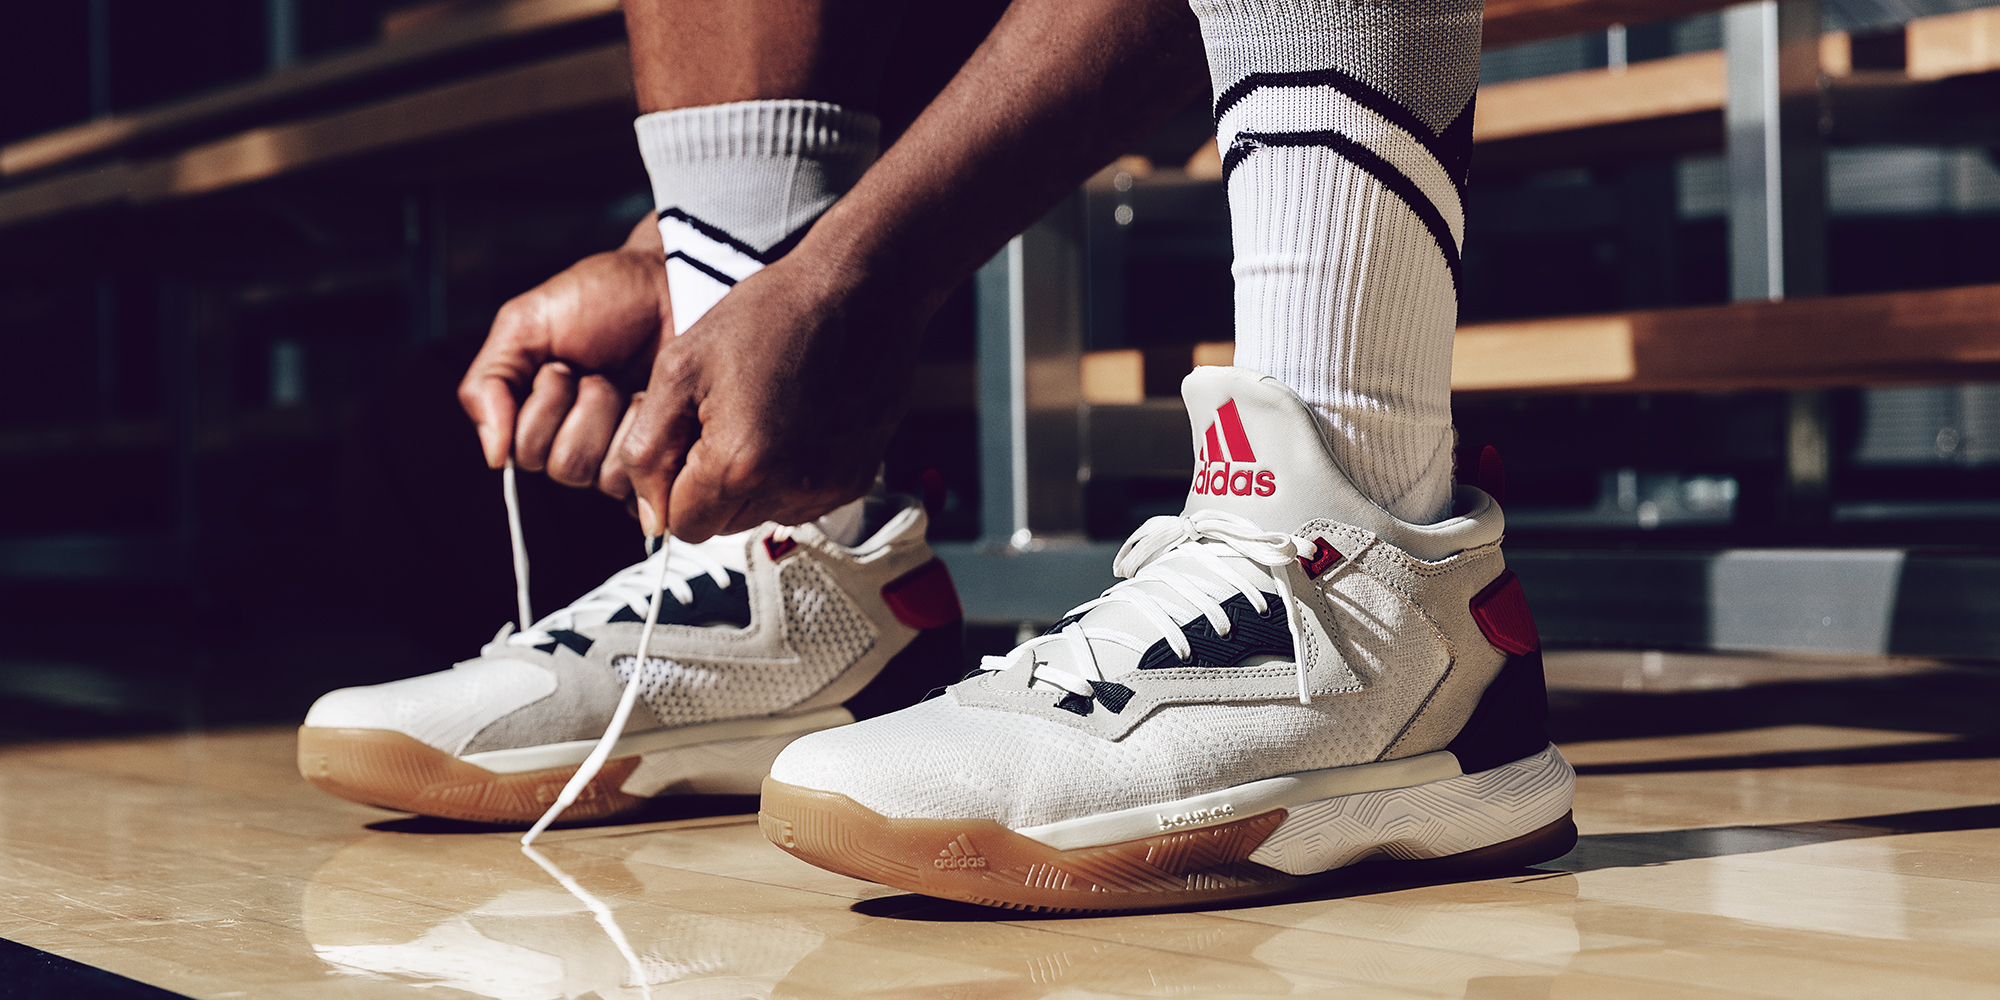 lowest price bcf45 050af The adidas D Lillard 2 Rip City Colorway is Available Now ..